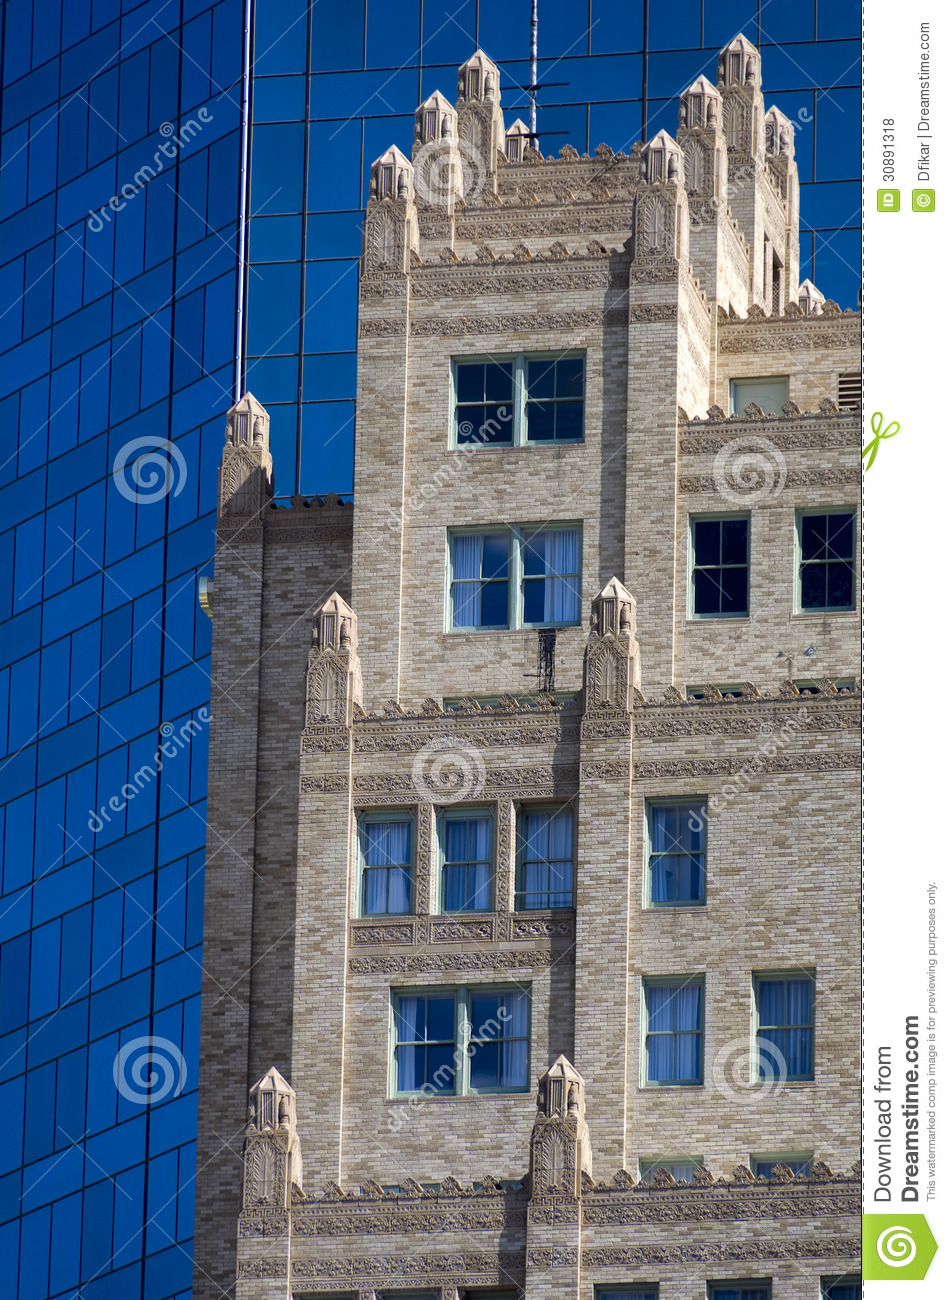 Old Vs New Contrasting Architecture Styles Stock Photo Image Of